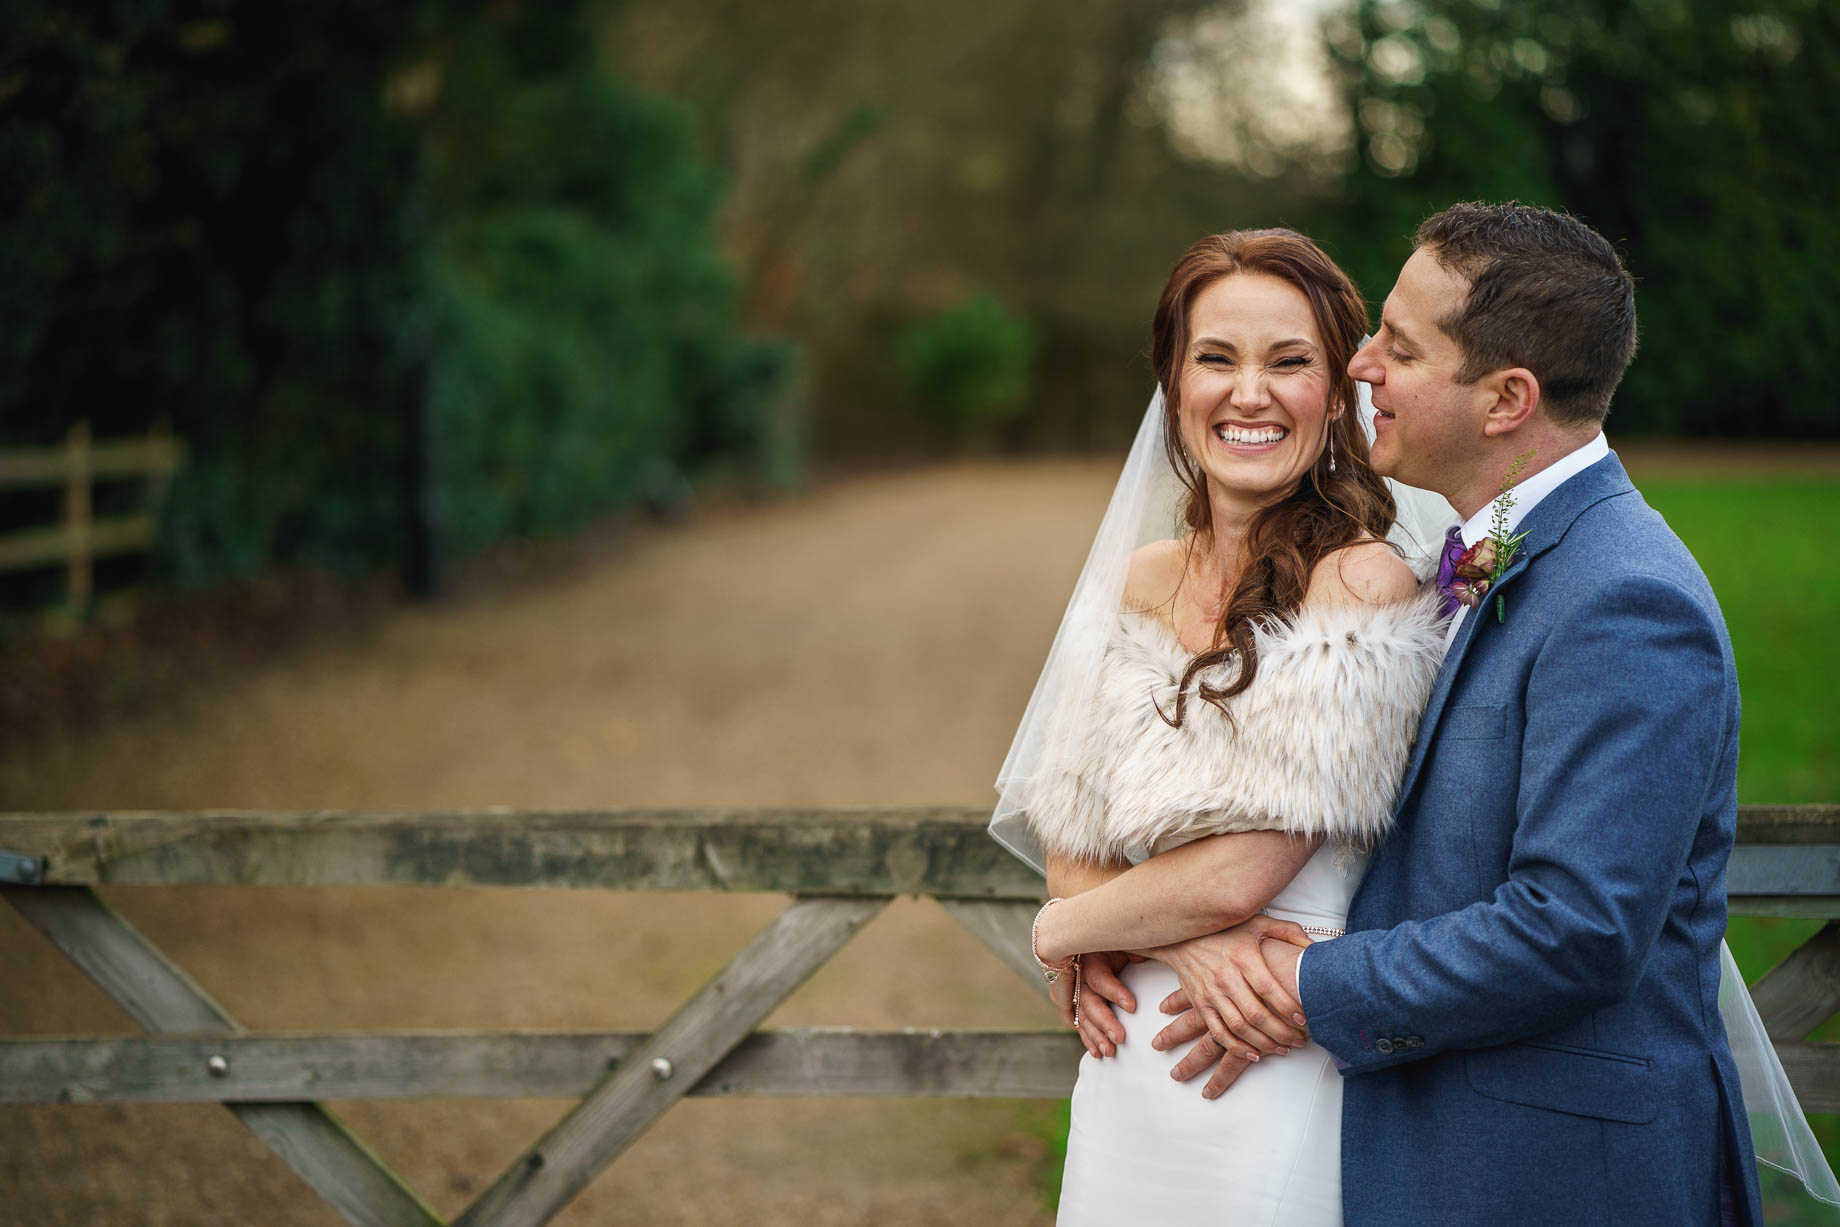 Tewin Bury Farm wedding photography - Liz + Jonny